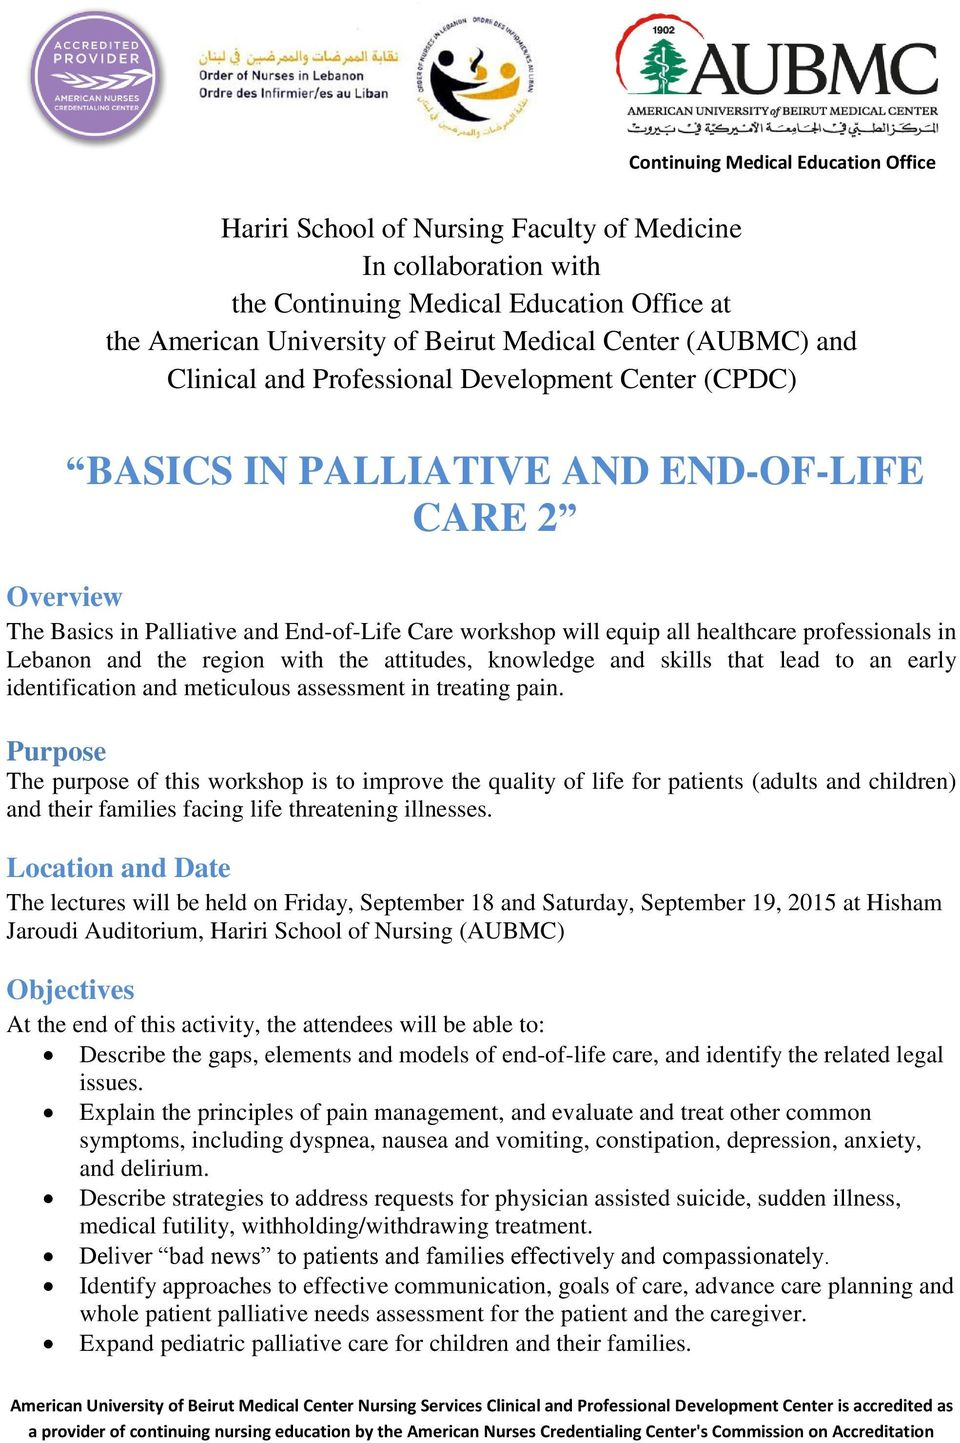 meticulous assessment in treating pain. Purpose The purpose of this workshop is to improve the quality of life for patients (adults and children) and their families facing life threatening illnesses.